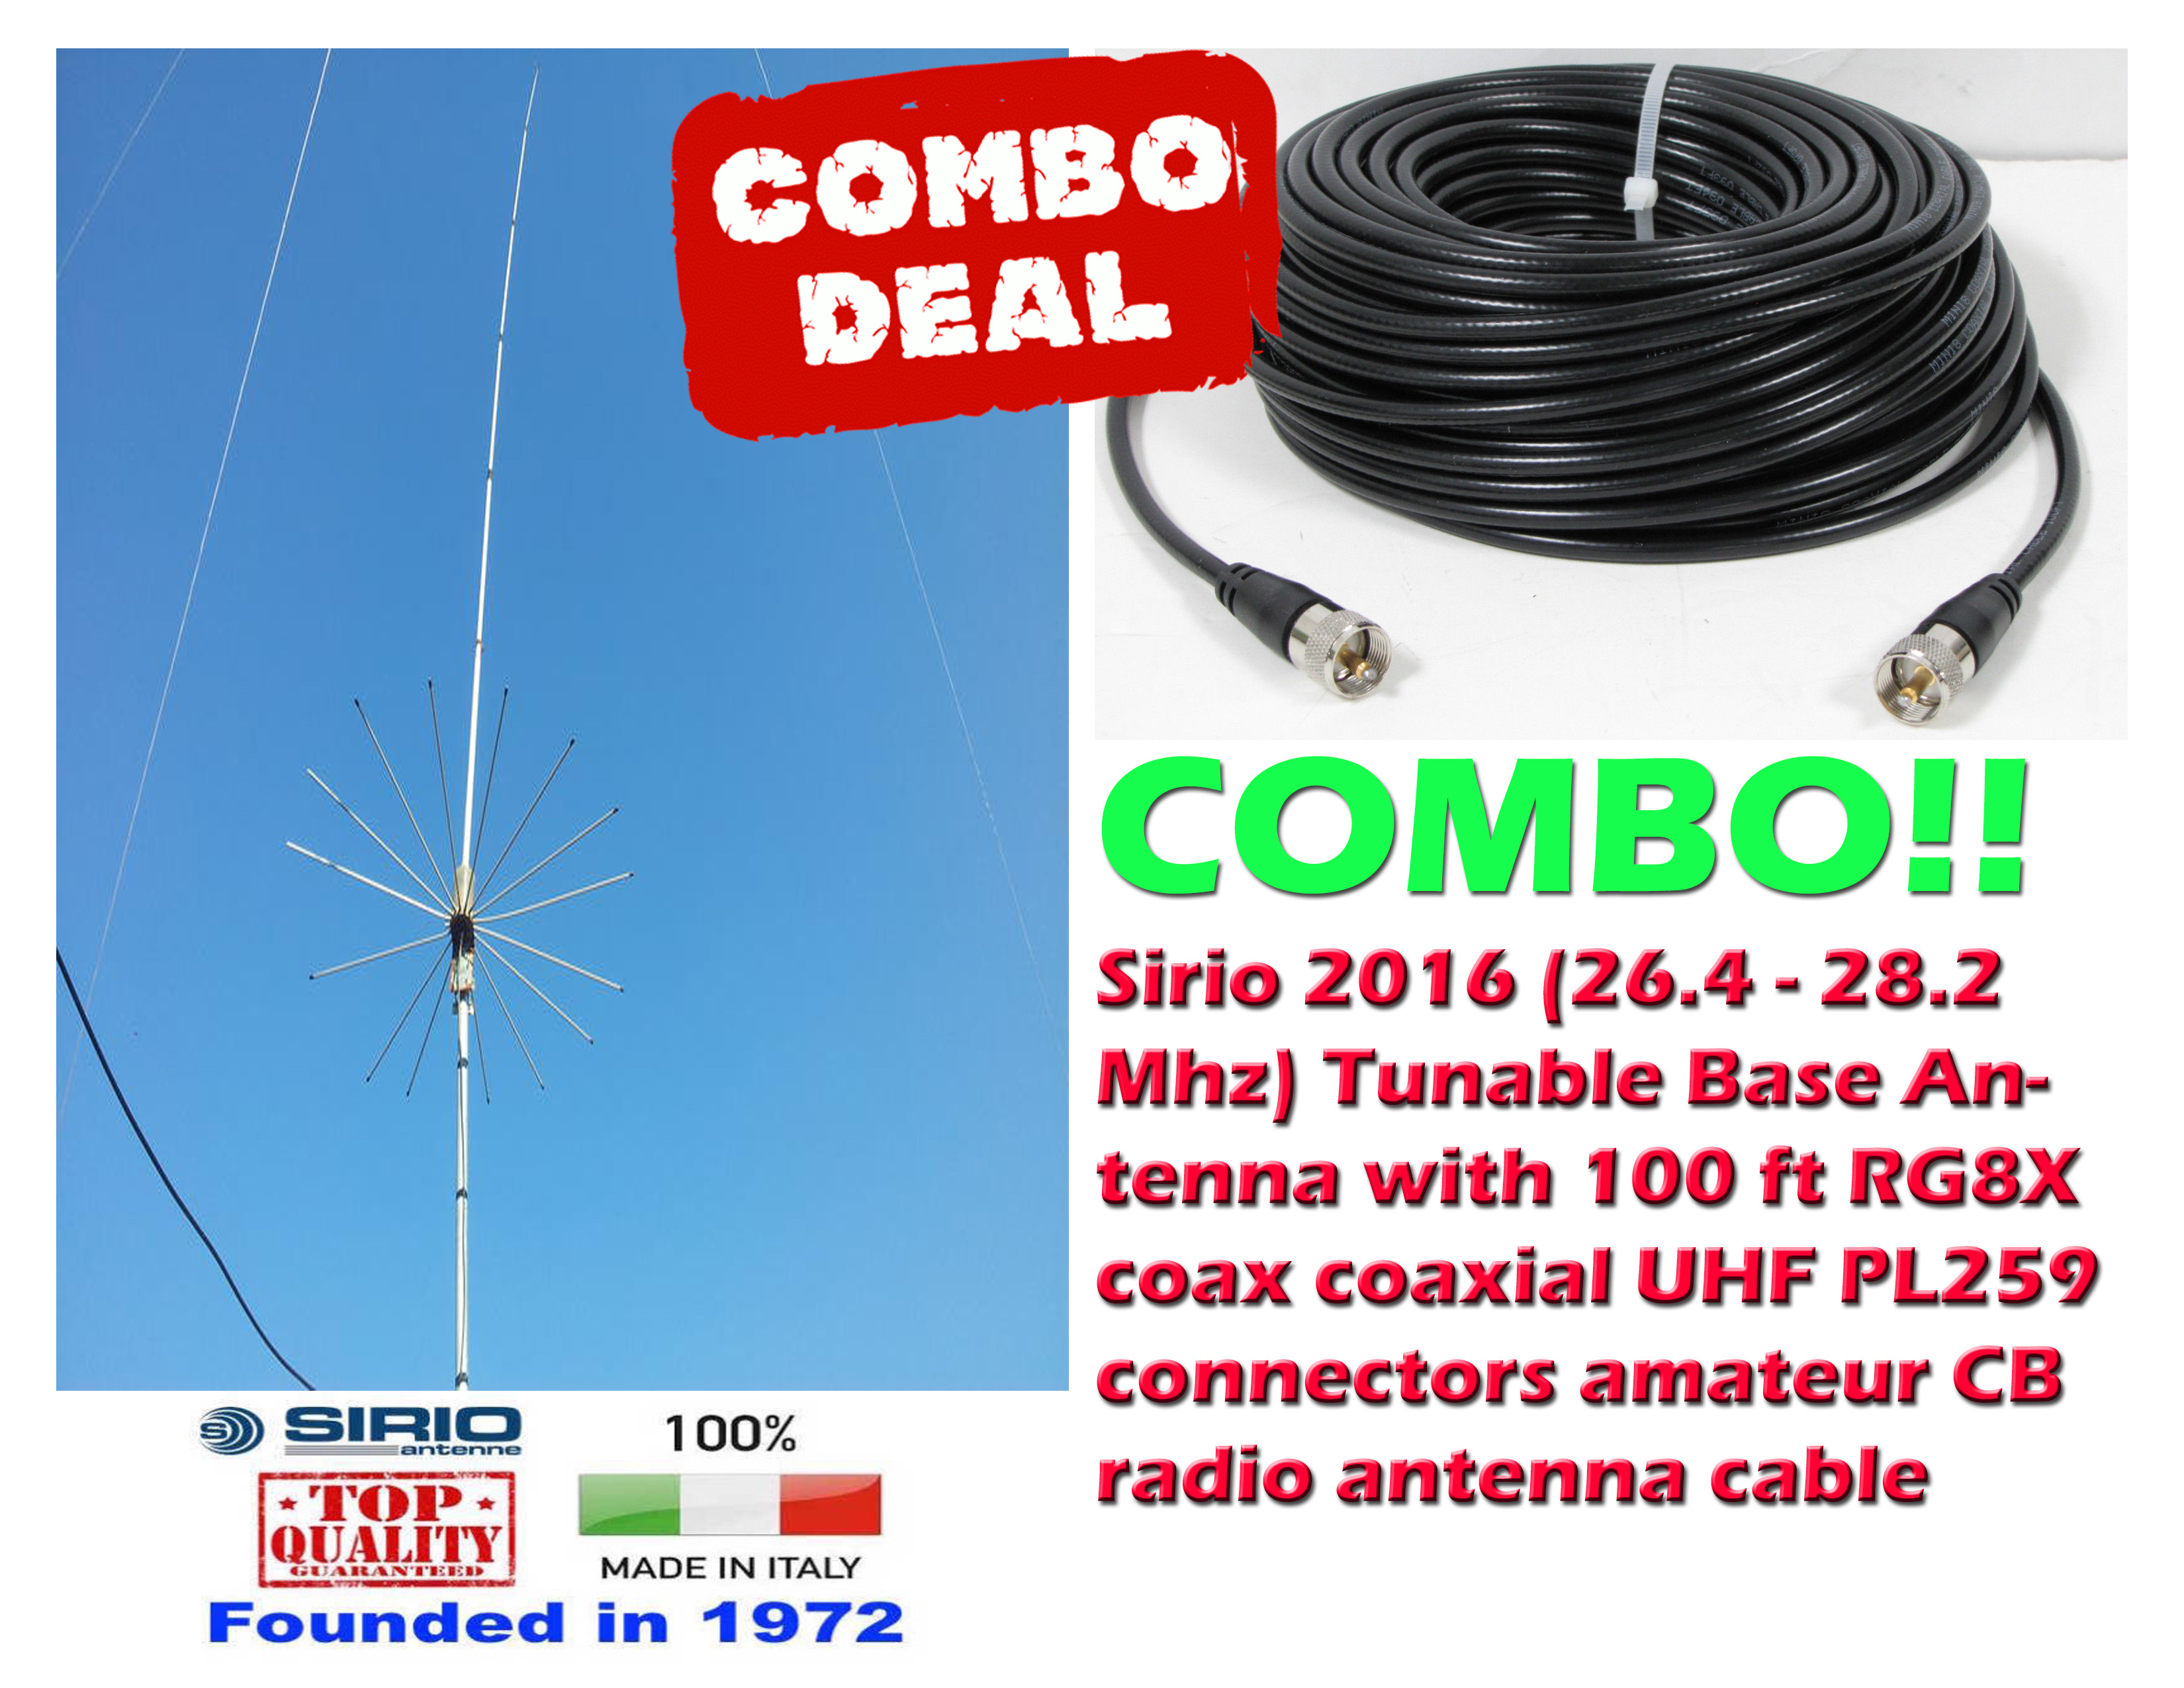 Sirio 2016 (26.4 - 28.2 Mhz) Tunable Base Antenna + 100 ft Coax